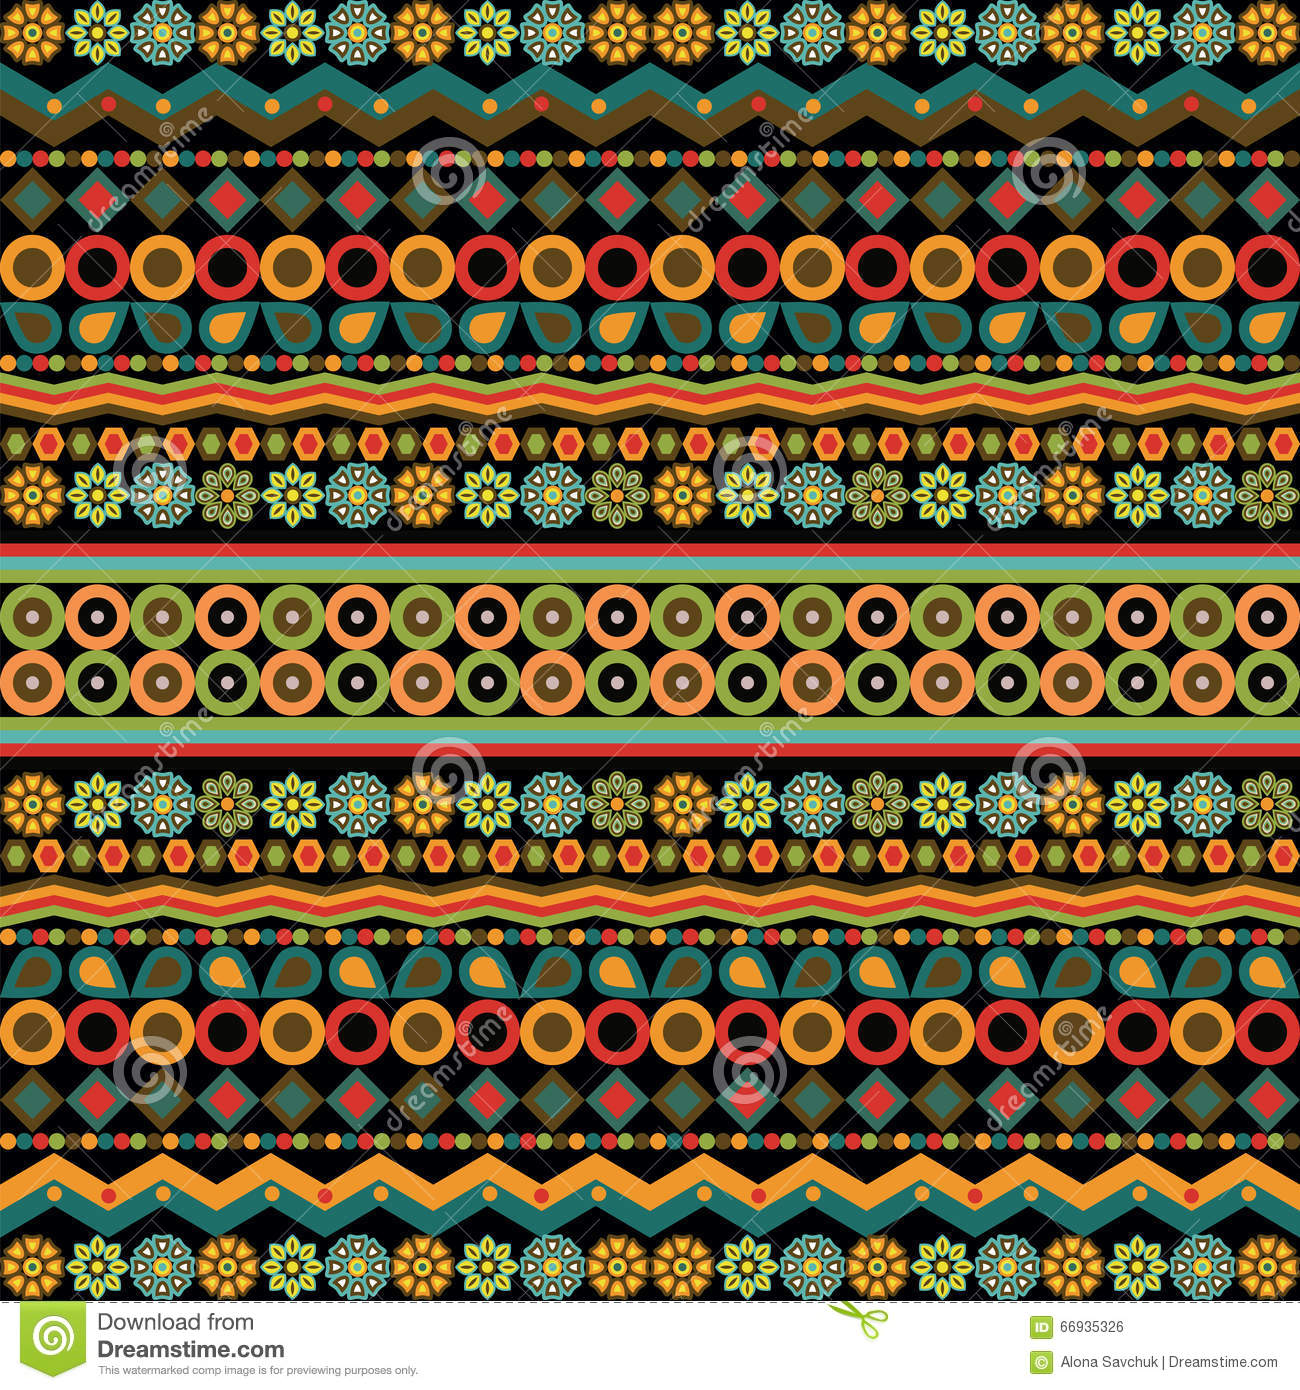 Ethno Pattern Posters And Prints Posterlounge Com